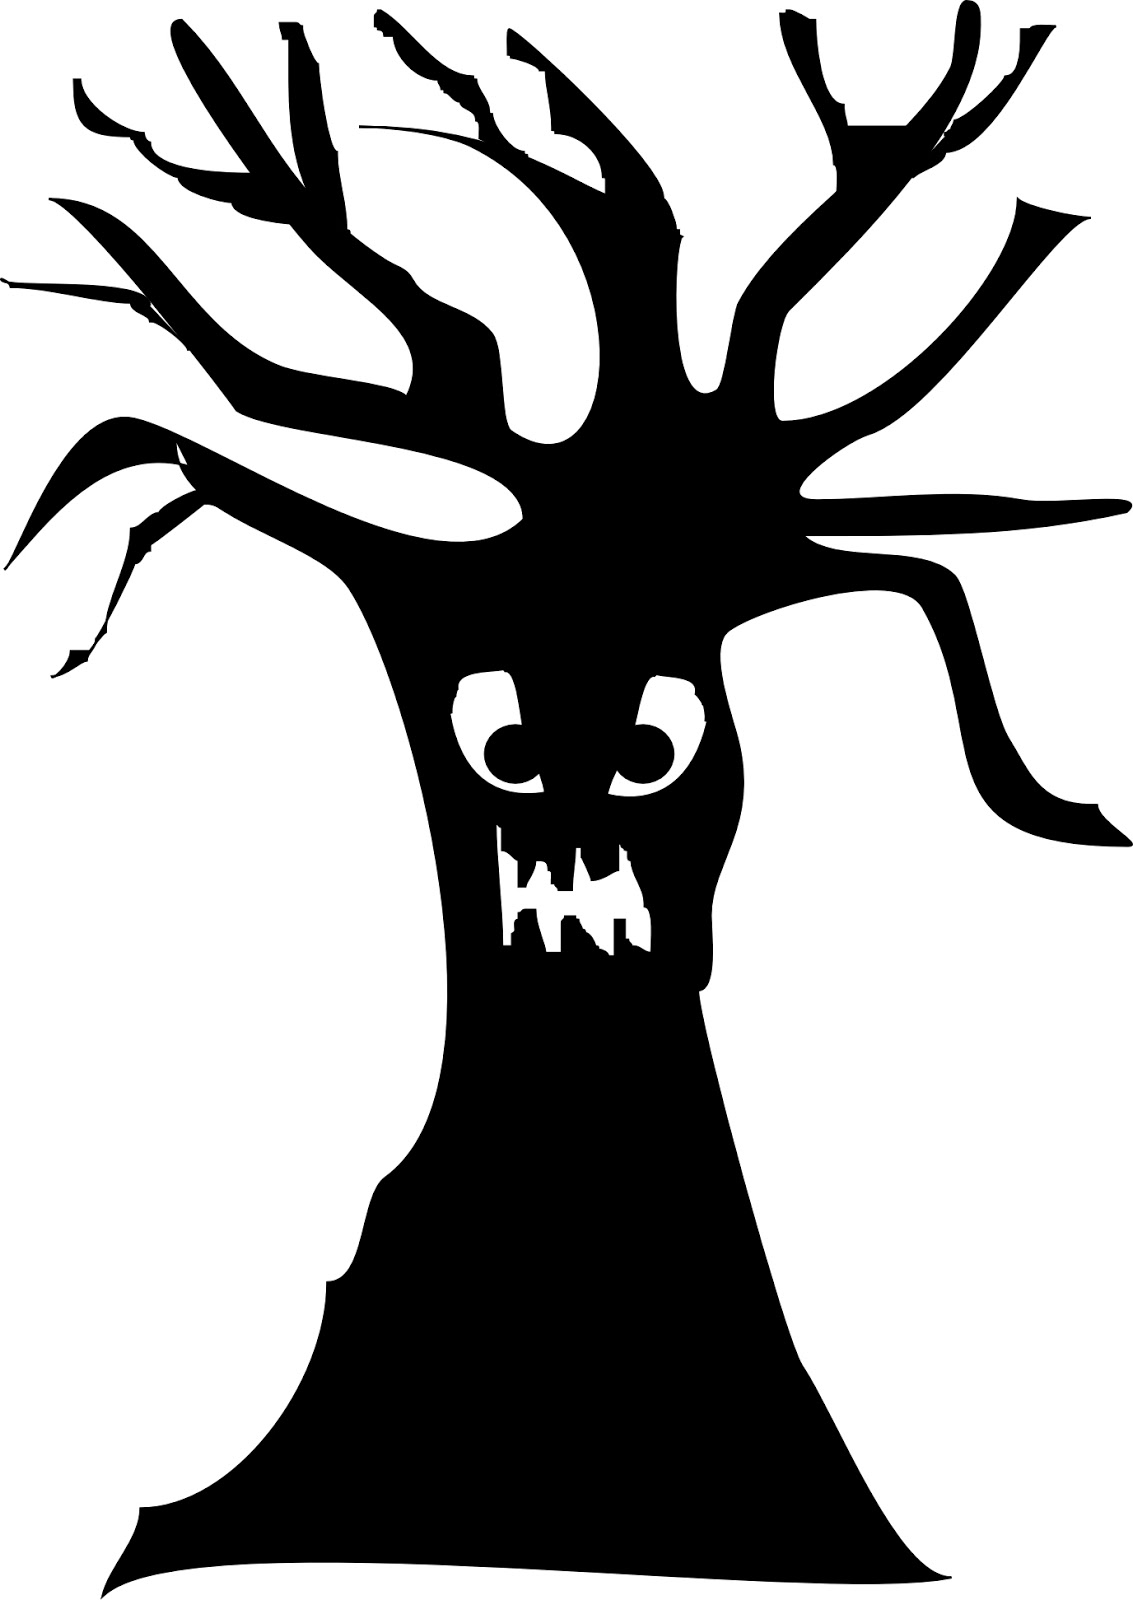 Silhouette clipart spooky clip art library download Free Spooky Tree Clipart, Download Free Clip Art, Free Clip ... clip art library download